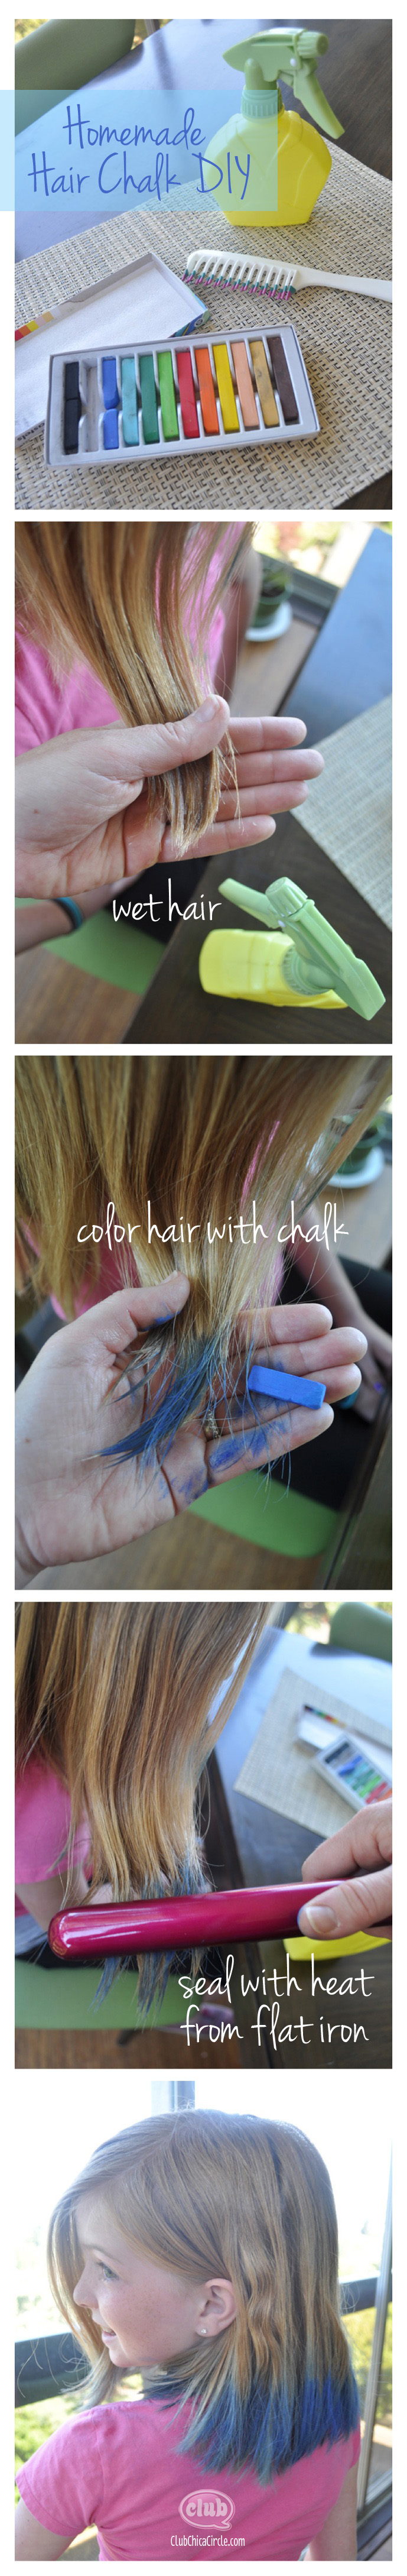 Homemade hair chalk tutorial for tweens homemade hair chalk diy clubchicacircle solutioingenieria Image collections